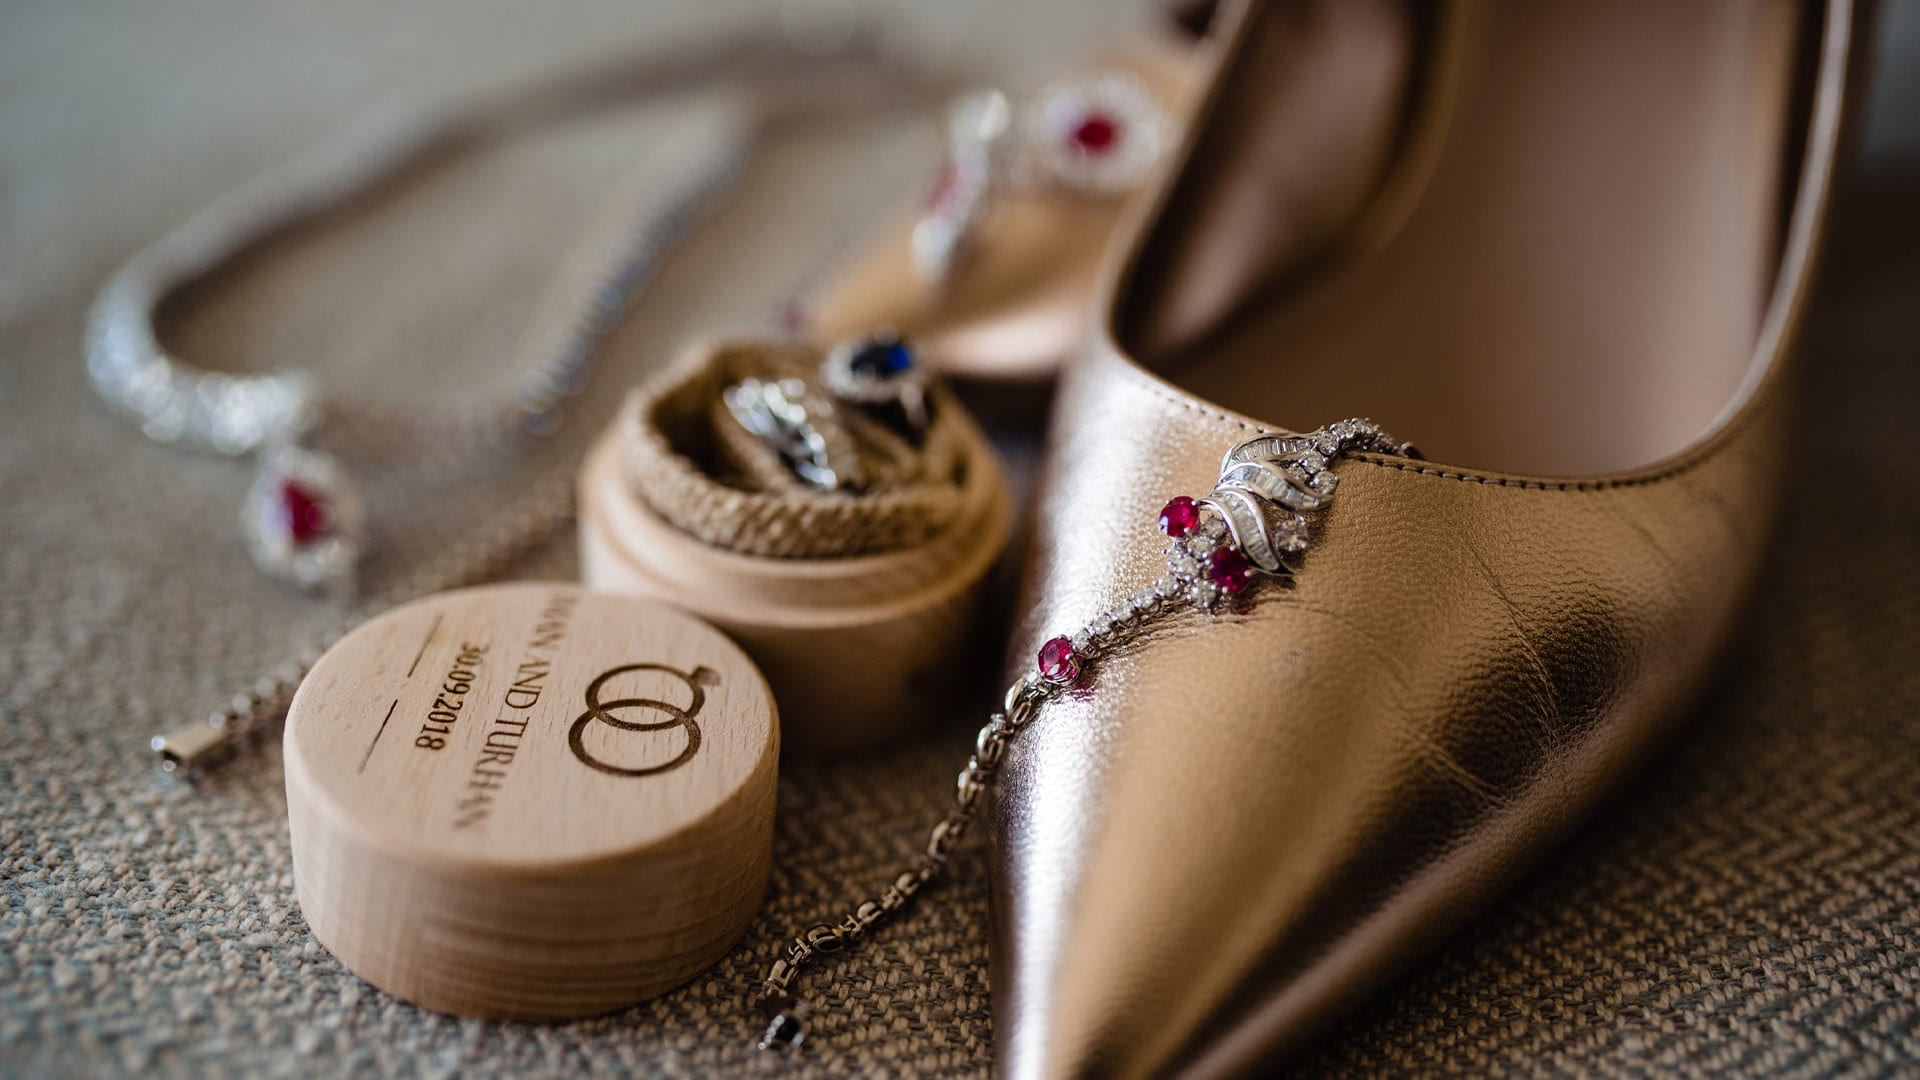 Wedding Rings and shoes - Wedding Photography